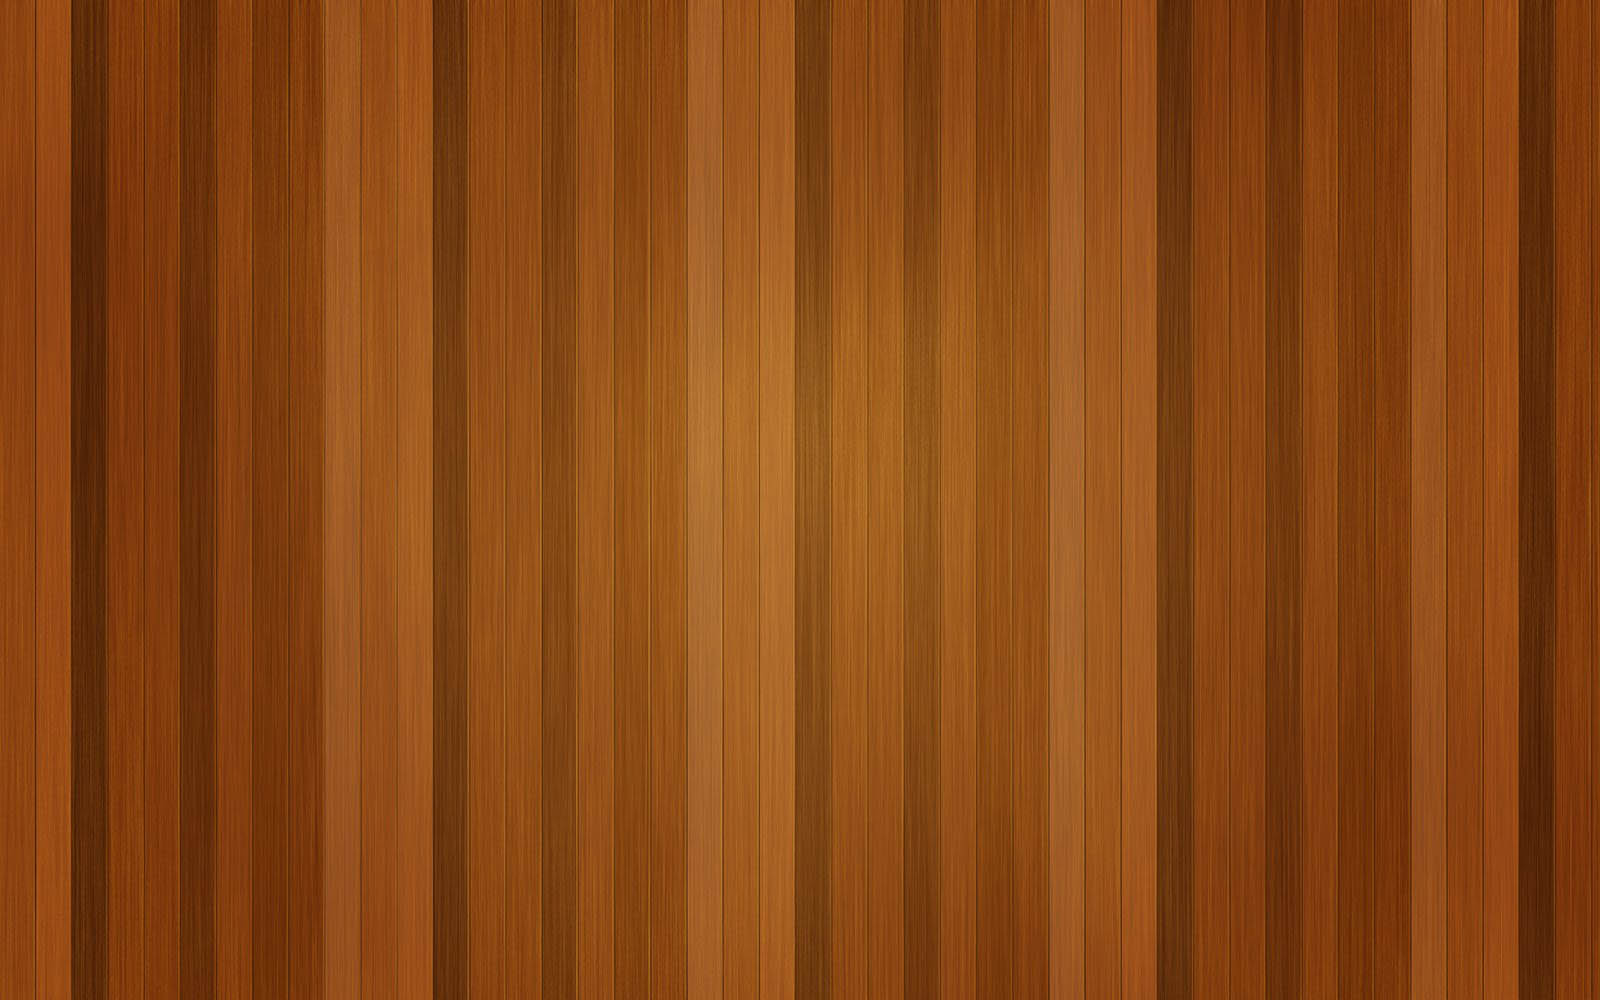 Hd Wallpaper Wood